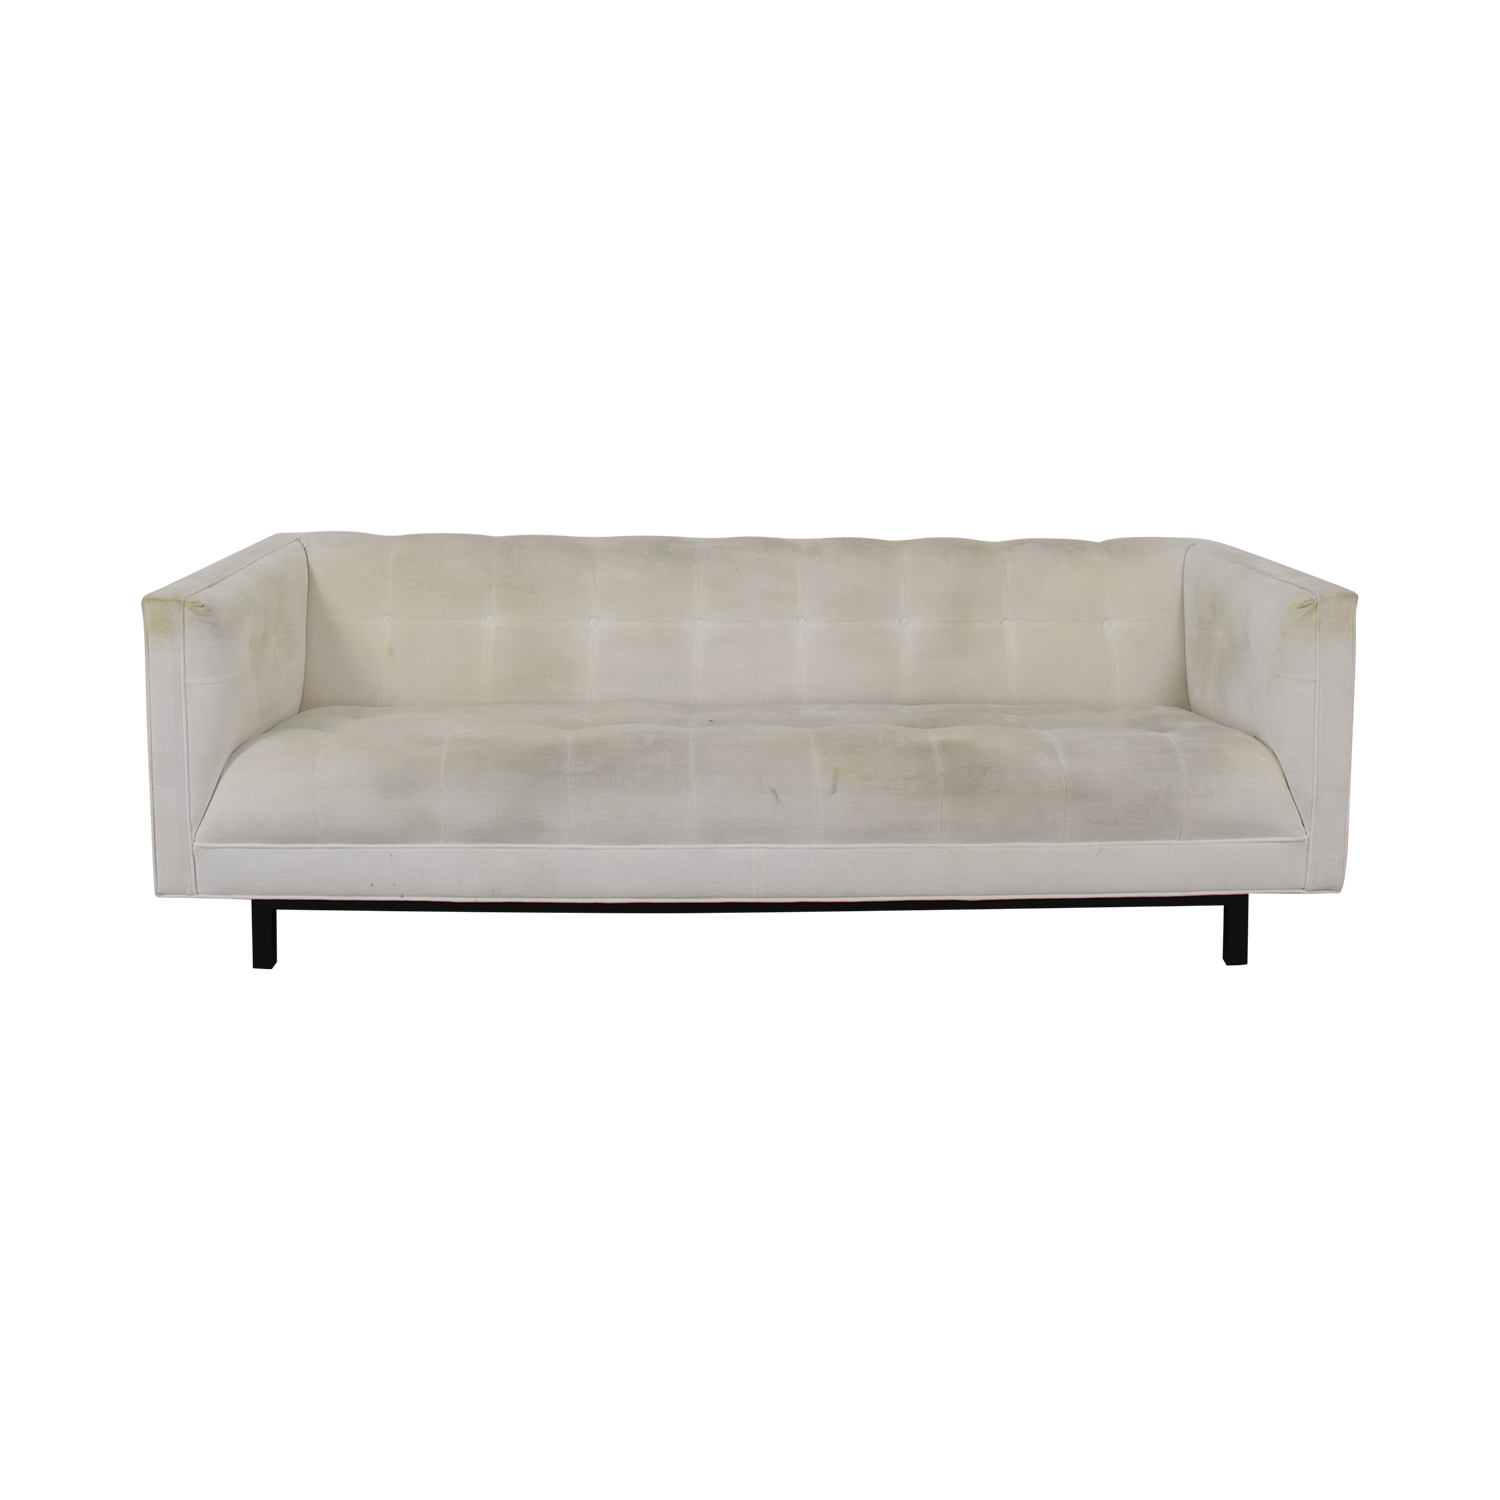 Restoration Hardware Restoration Hardware Madison Sofa